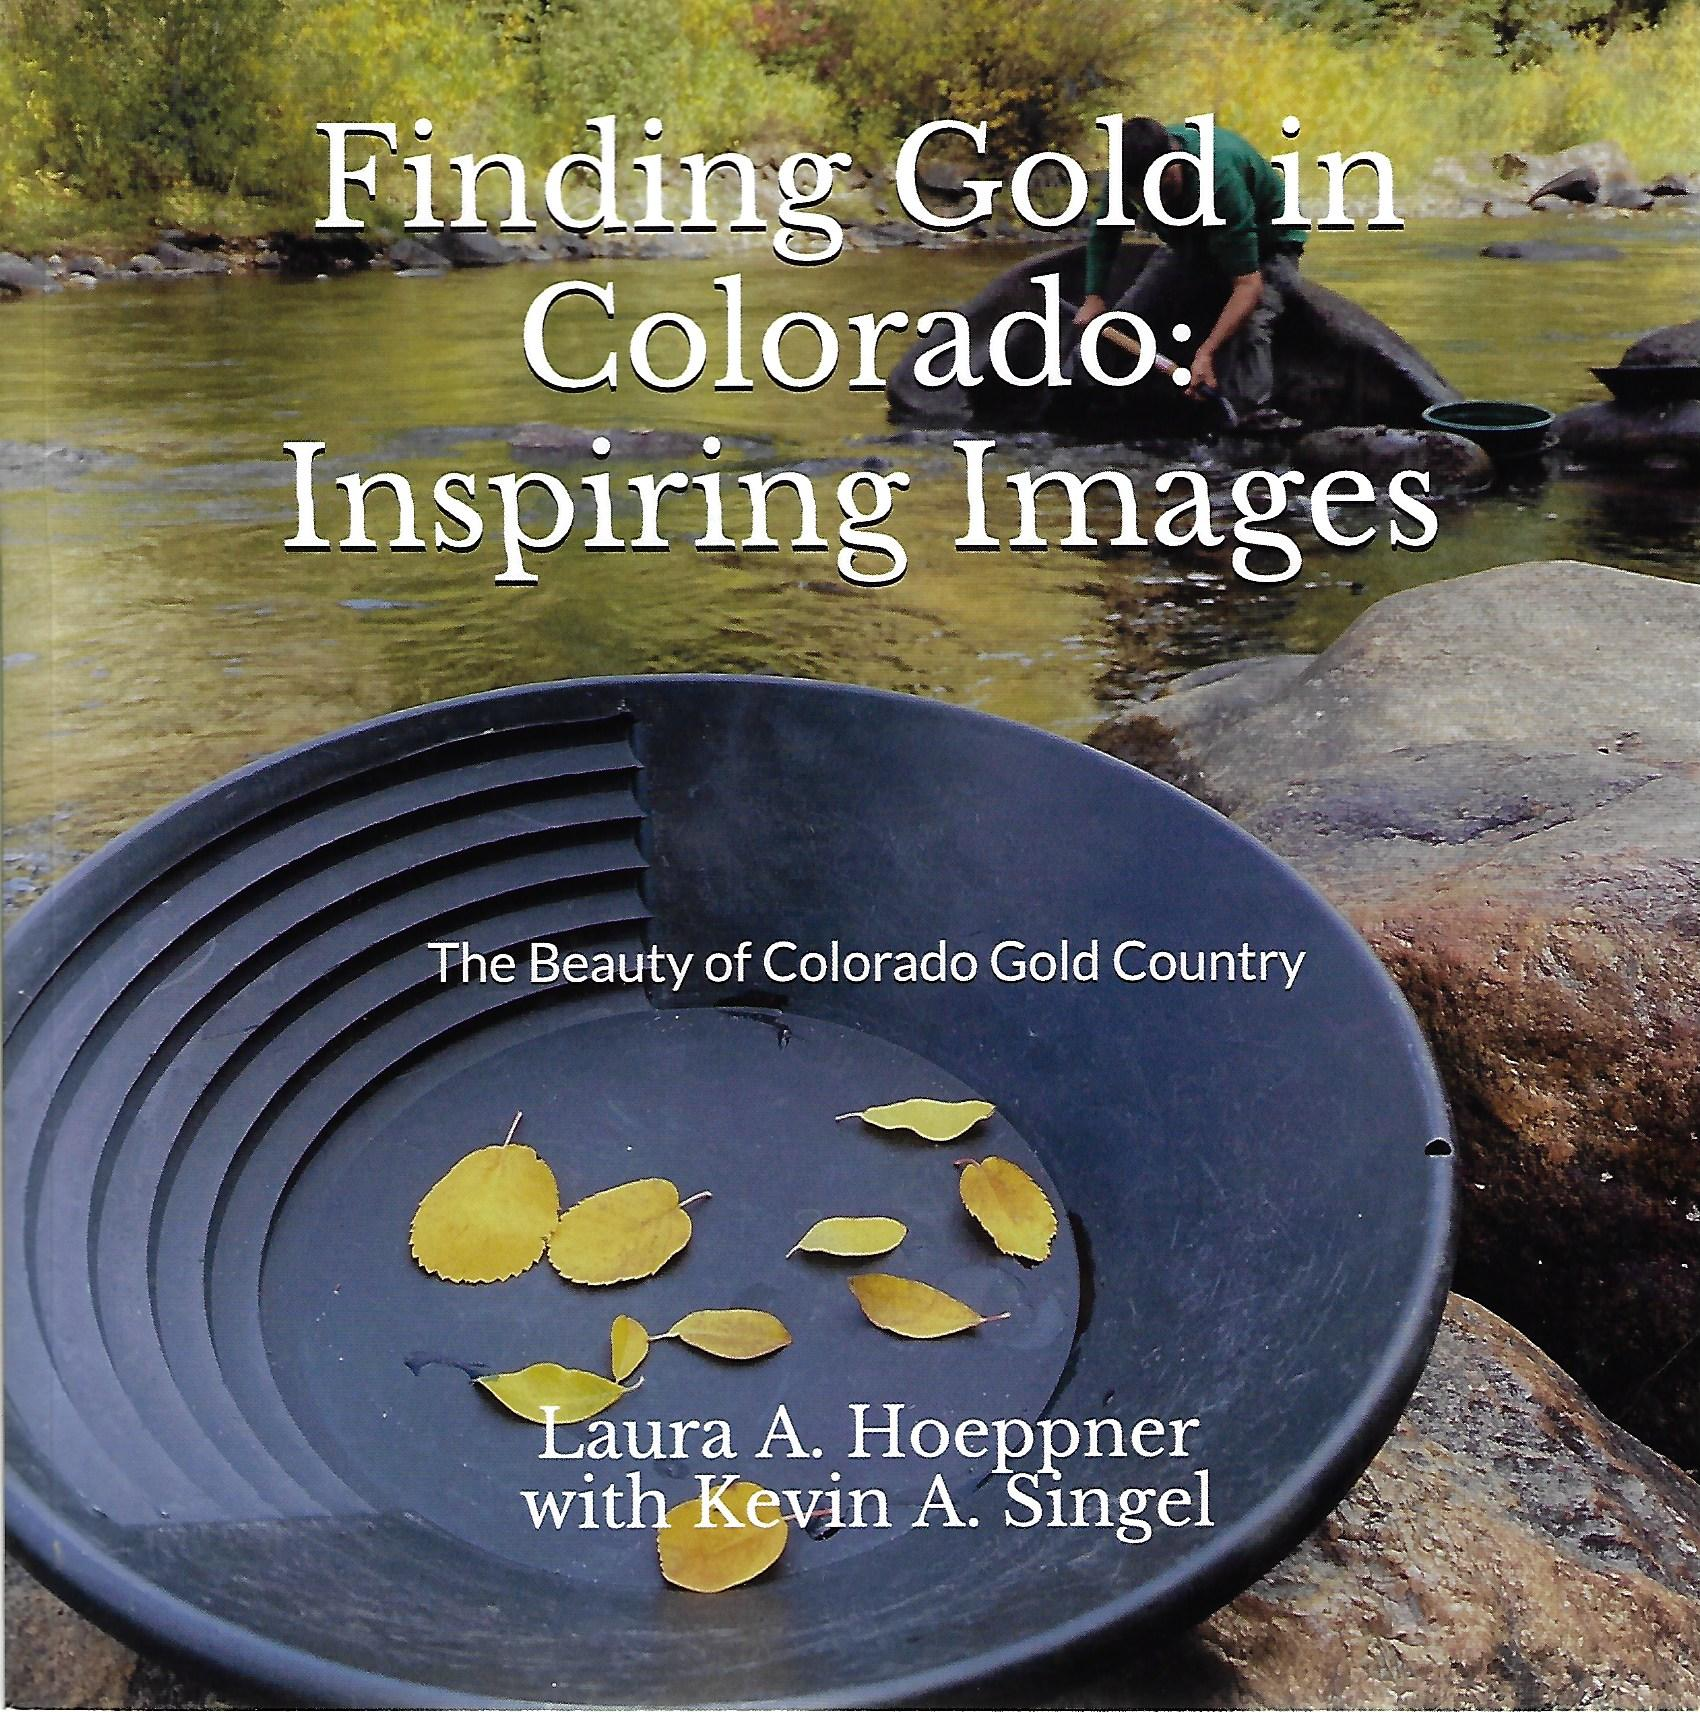 Finding Gold in CO Inspirering Images